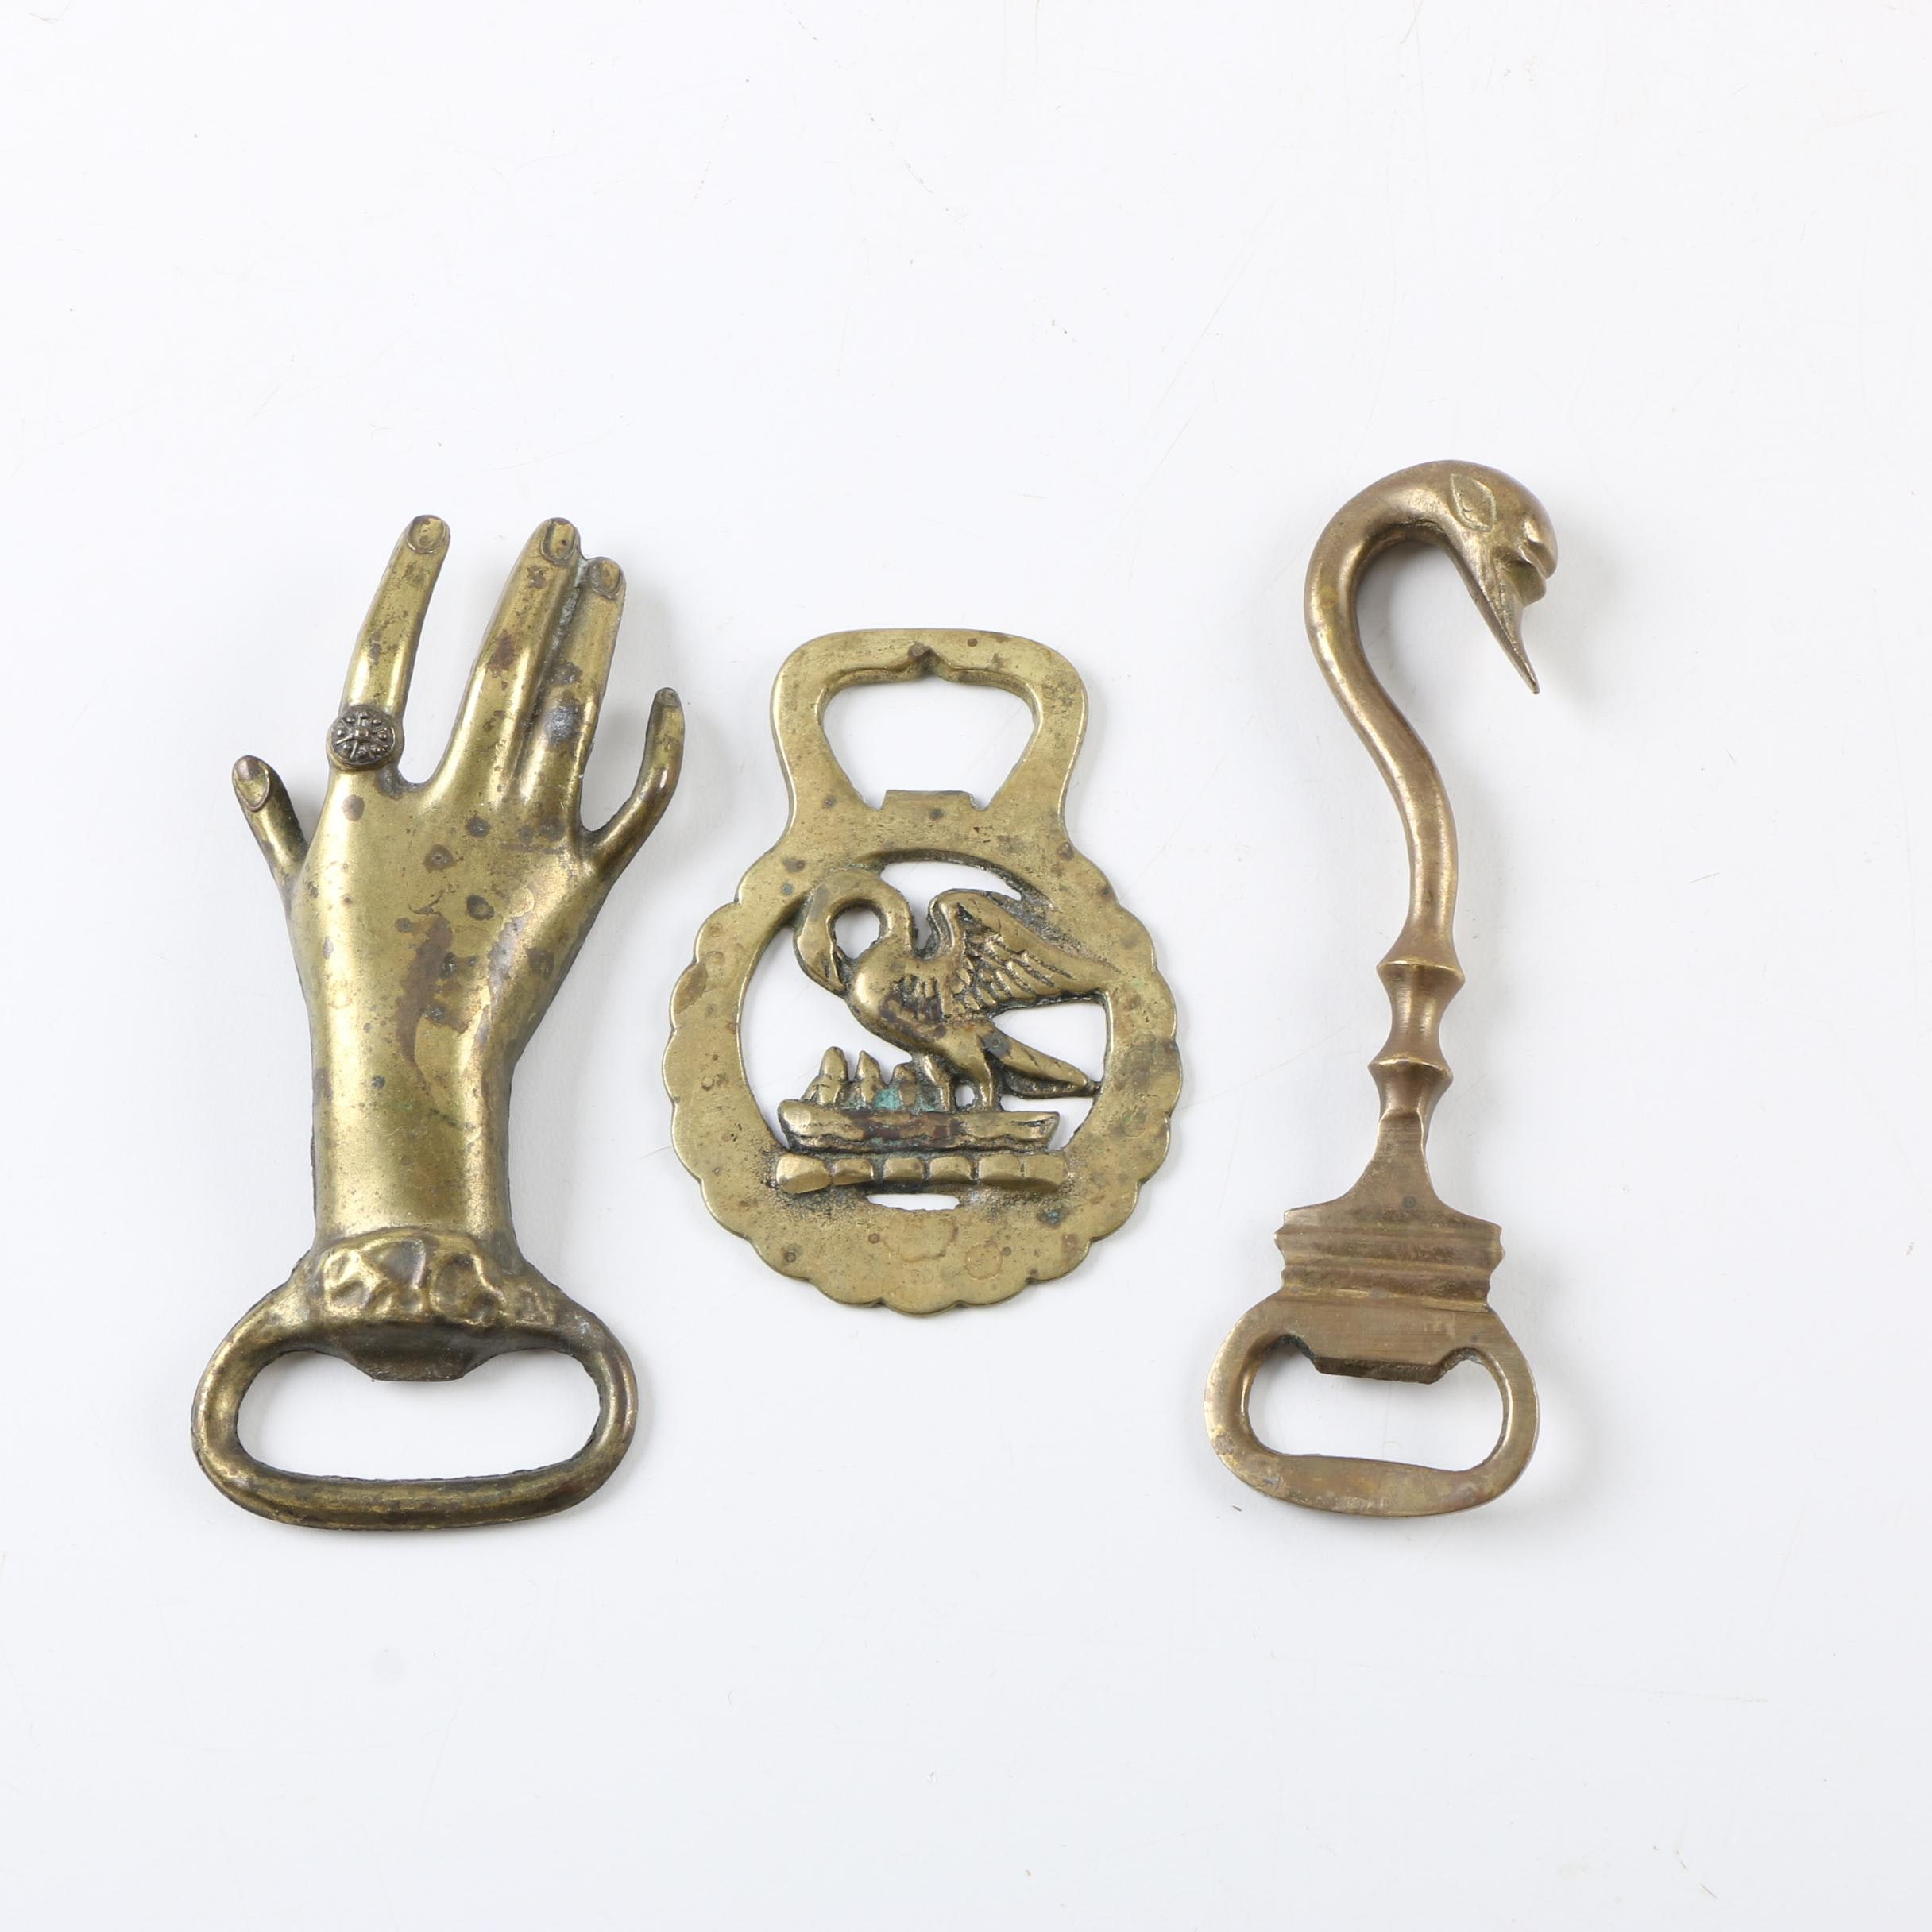 Vintage Brass Bottle Openers with Horse Brass